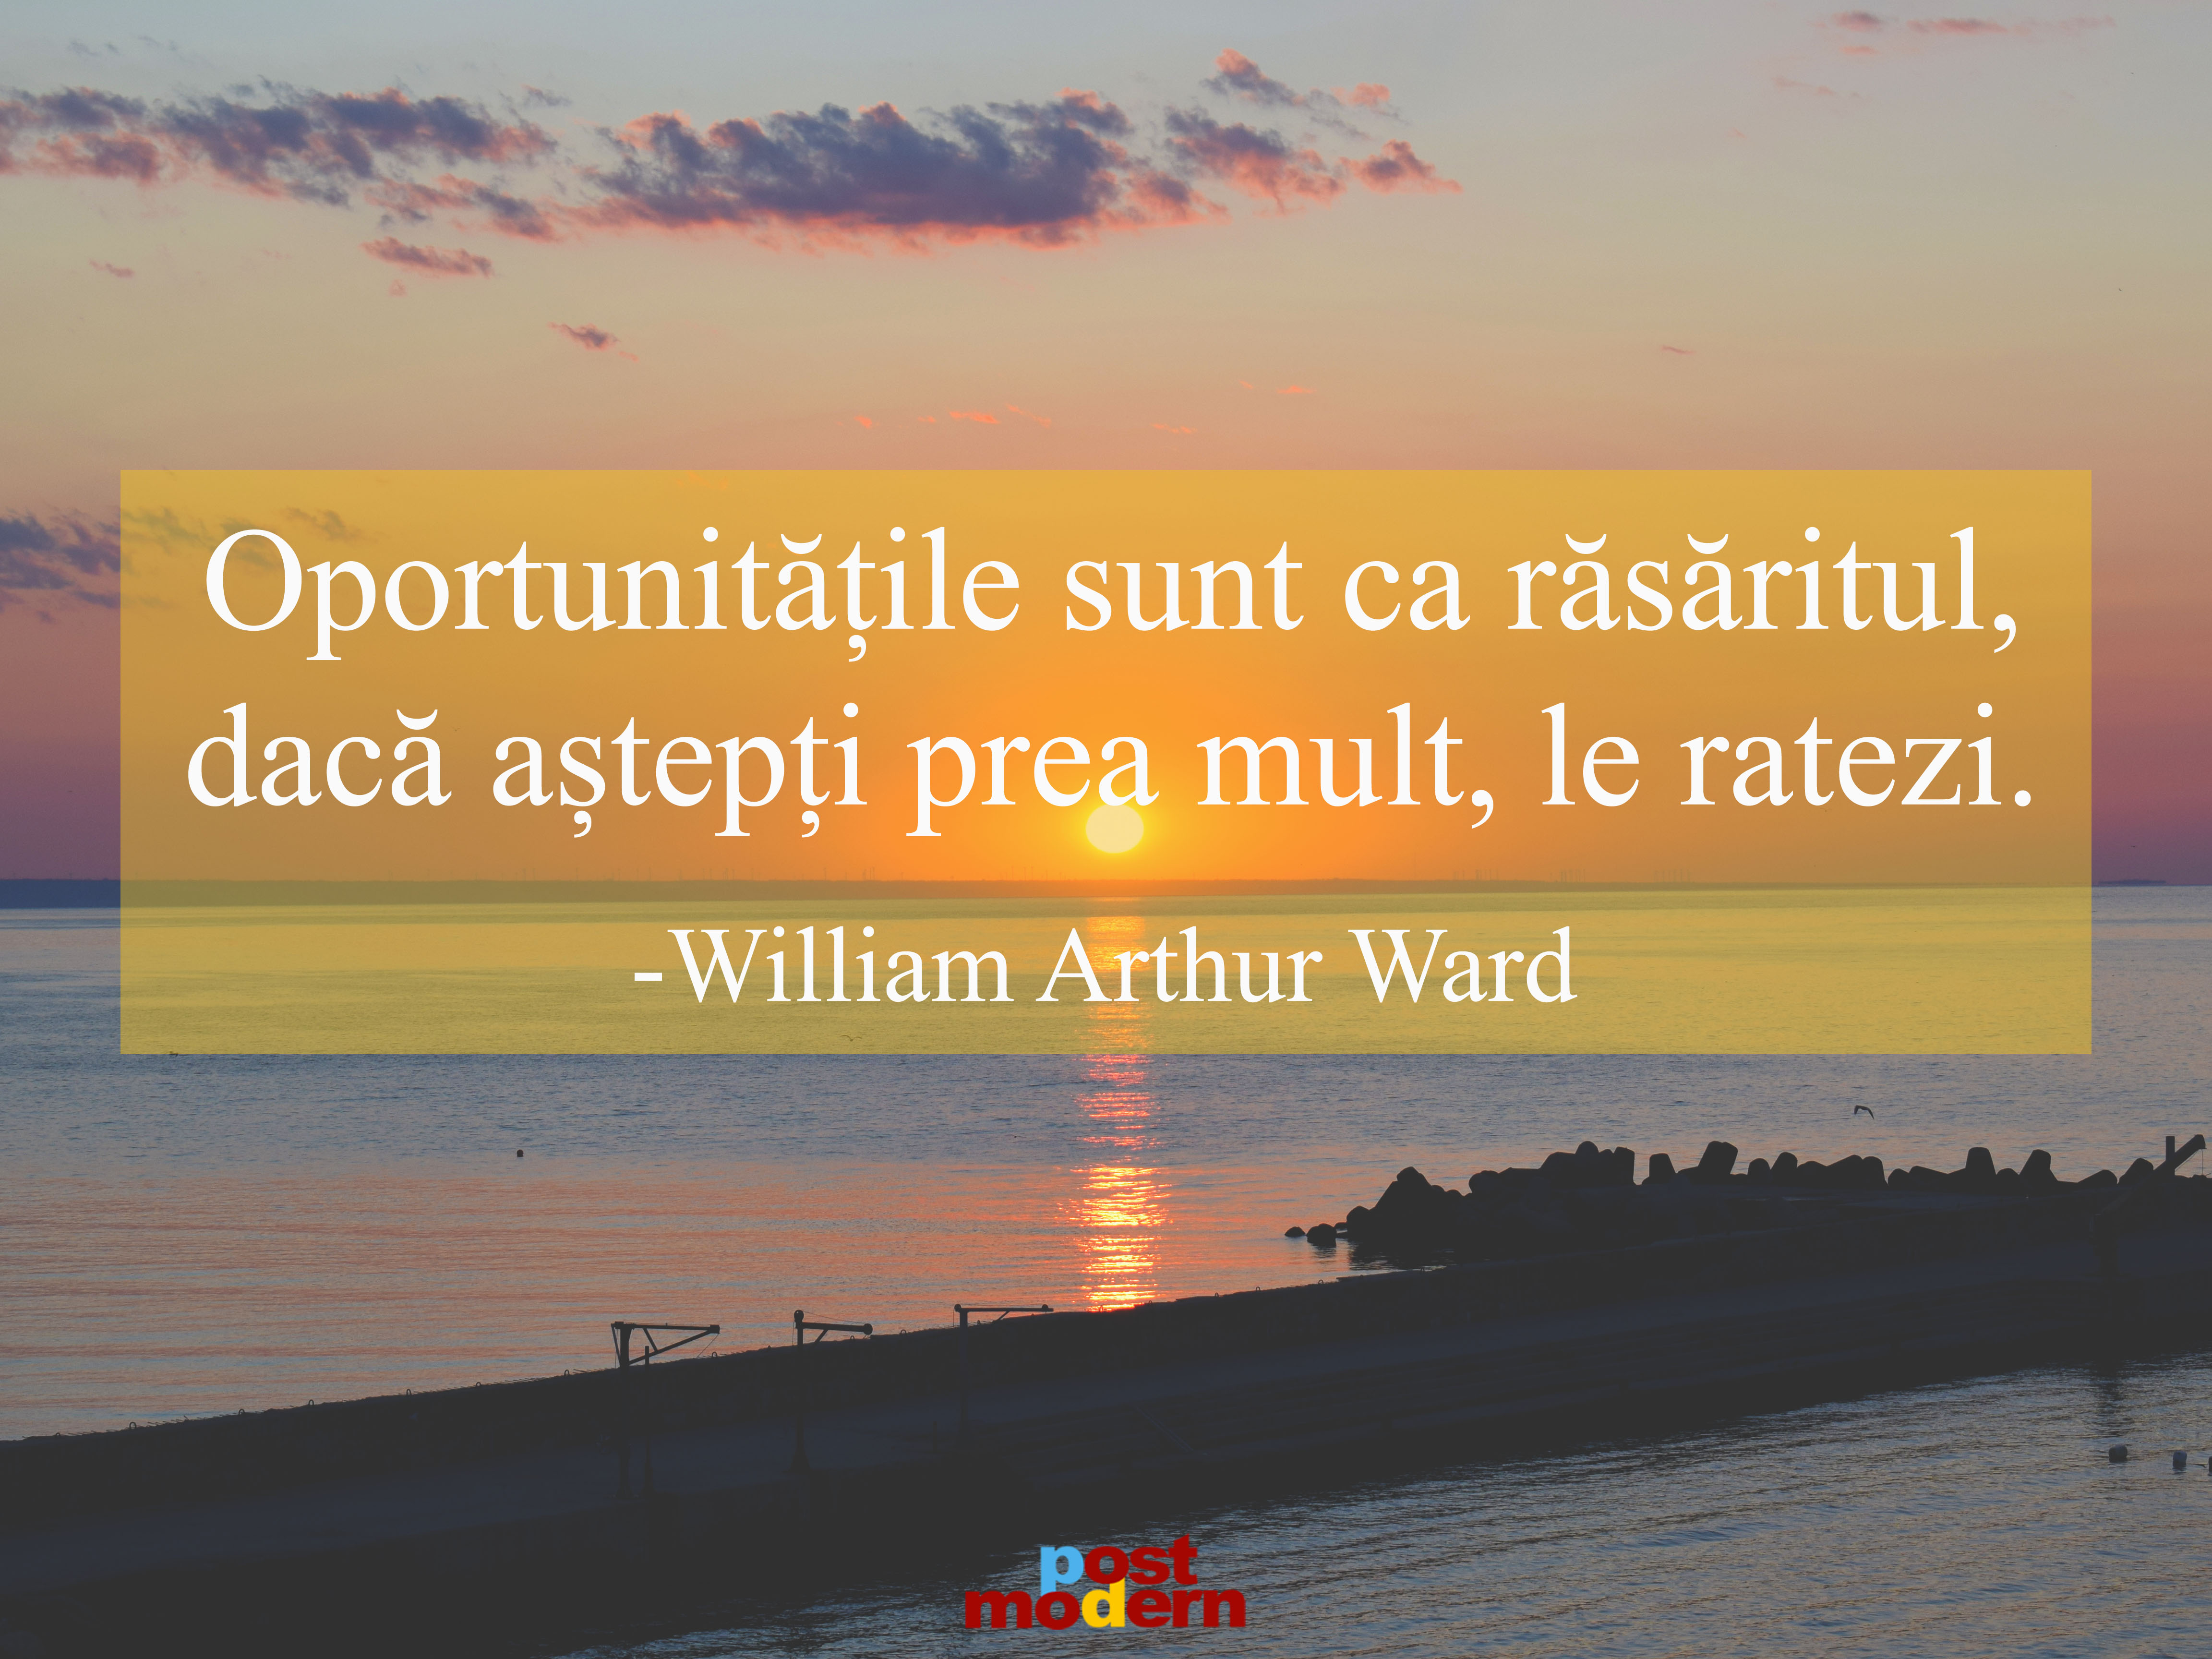 william arthur ward citate